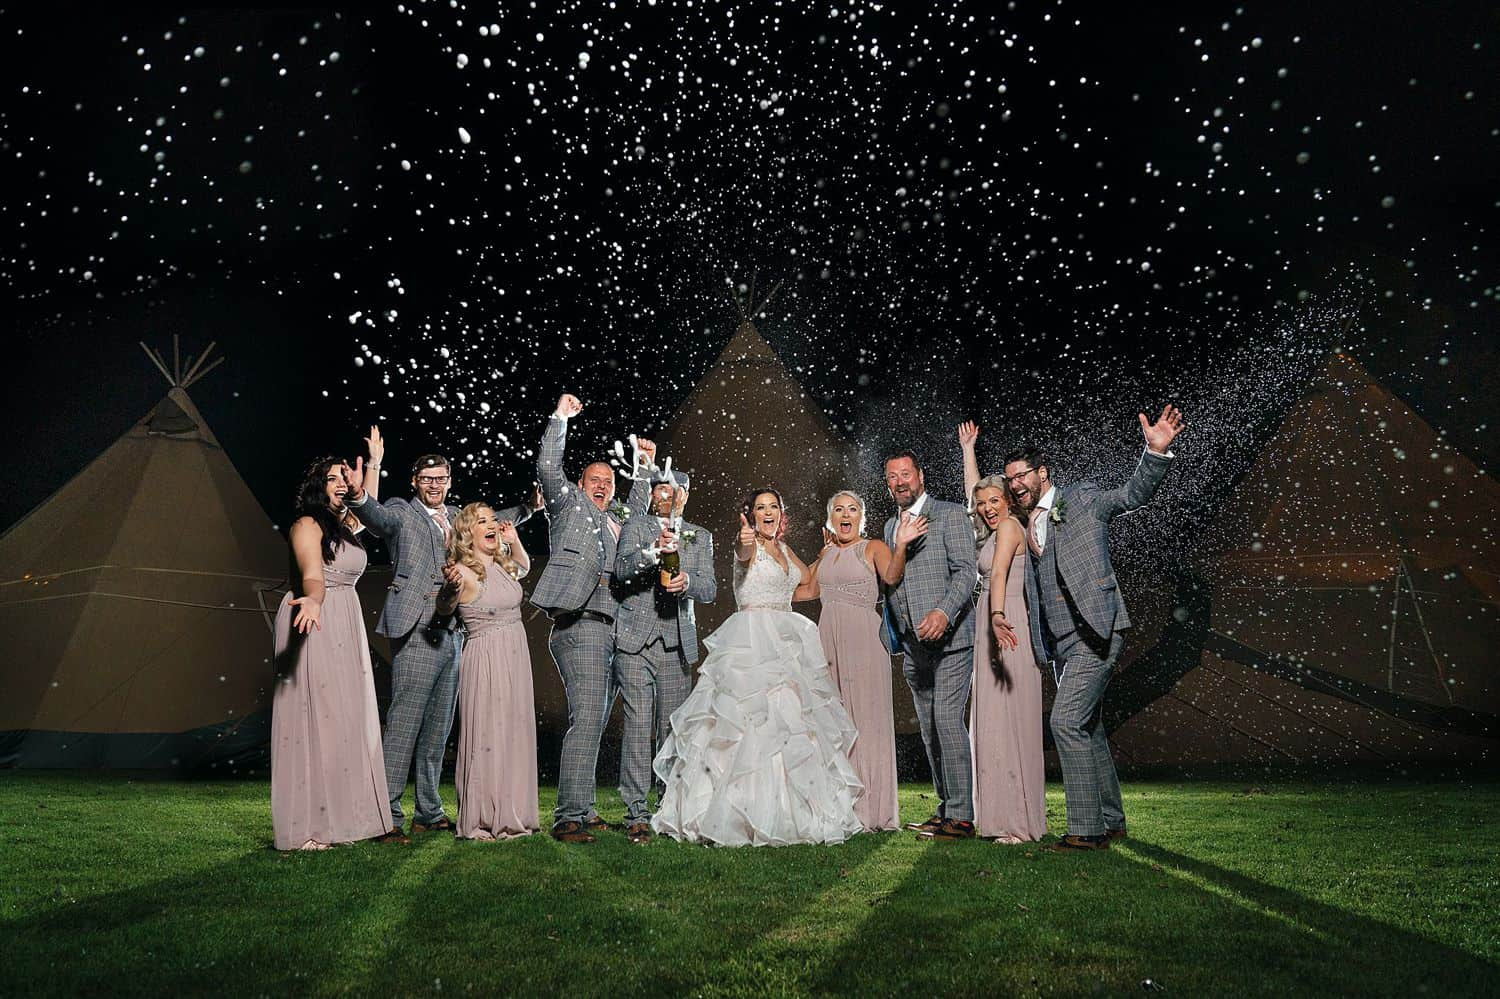 A wedding party cheers in this nighttime shot taken in the rain